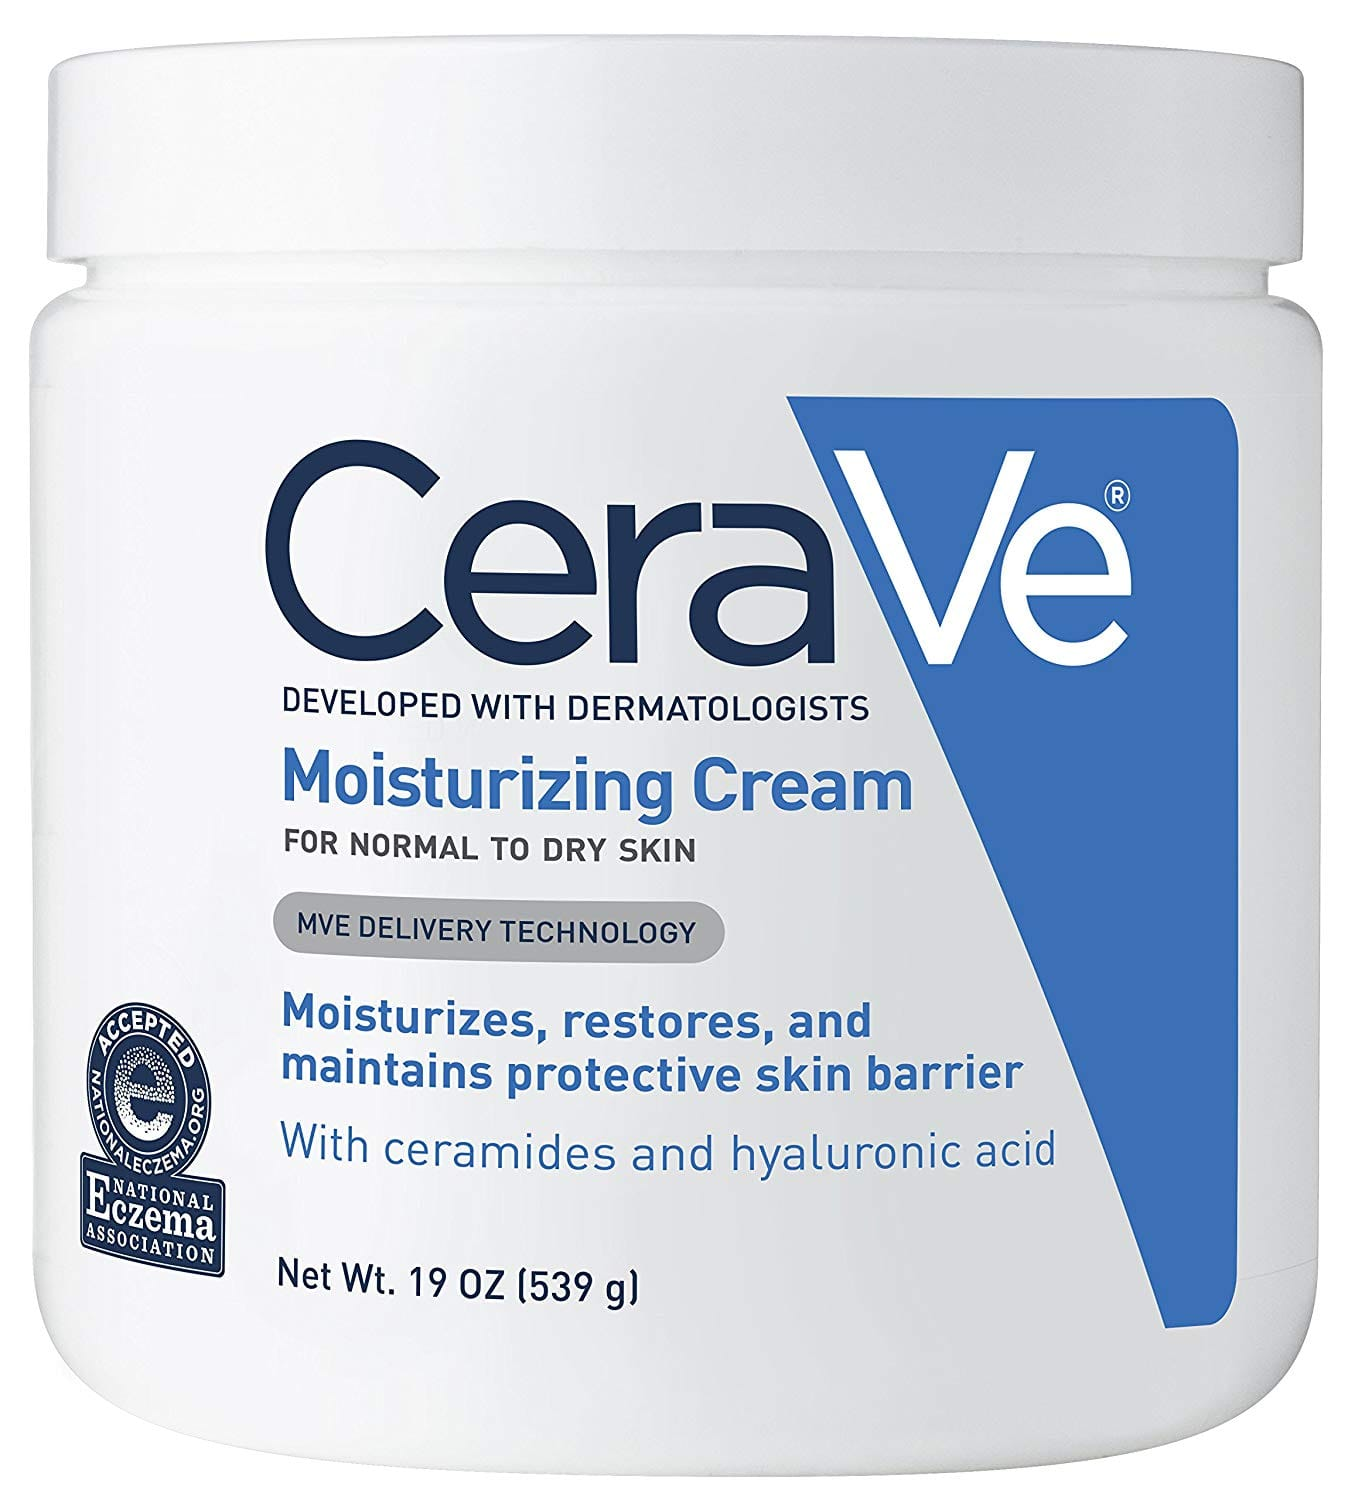 19oz CeraVe Daily Face and Body Moisturizing Cream 2 for $22.06 or less w/ S&S + Free S&H